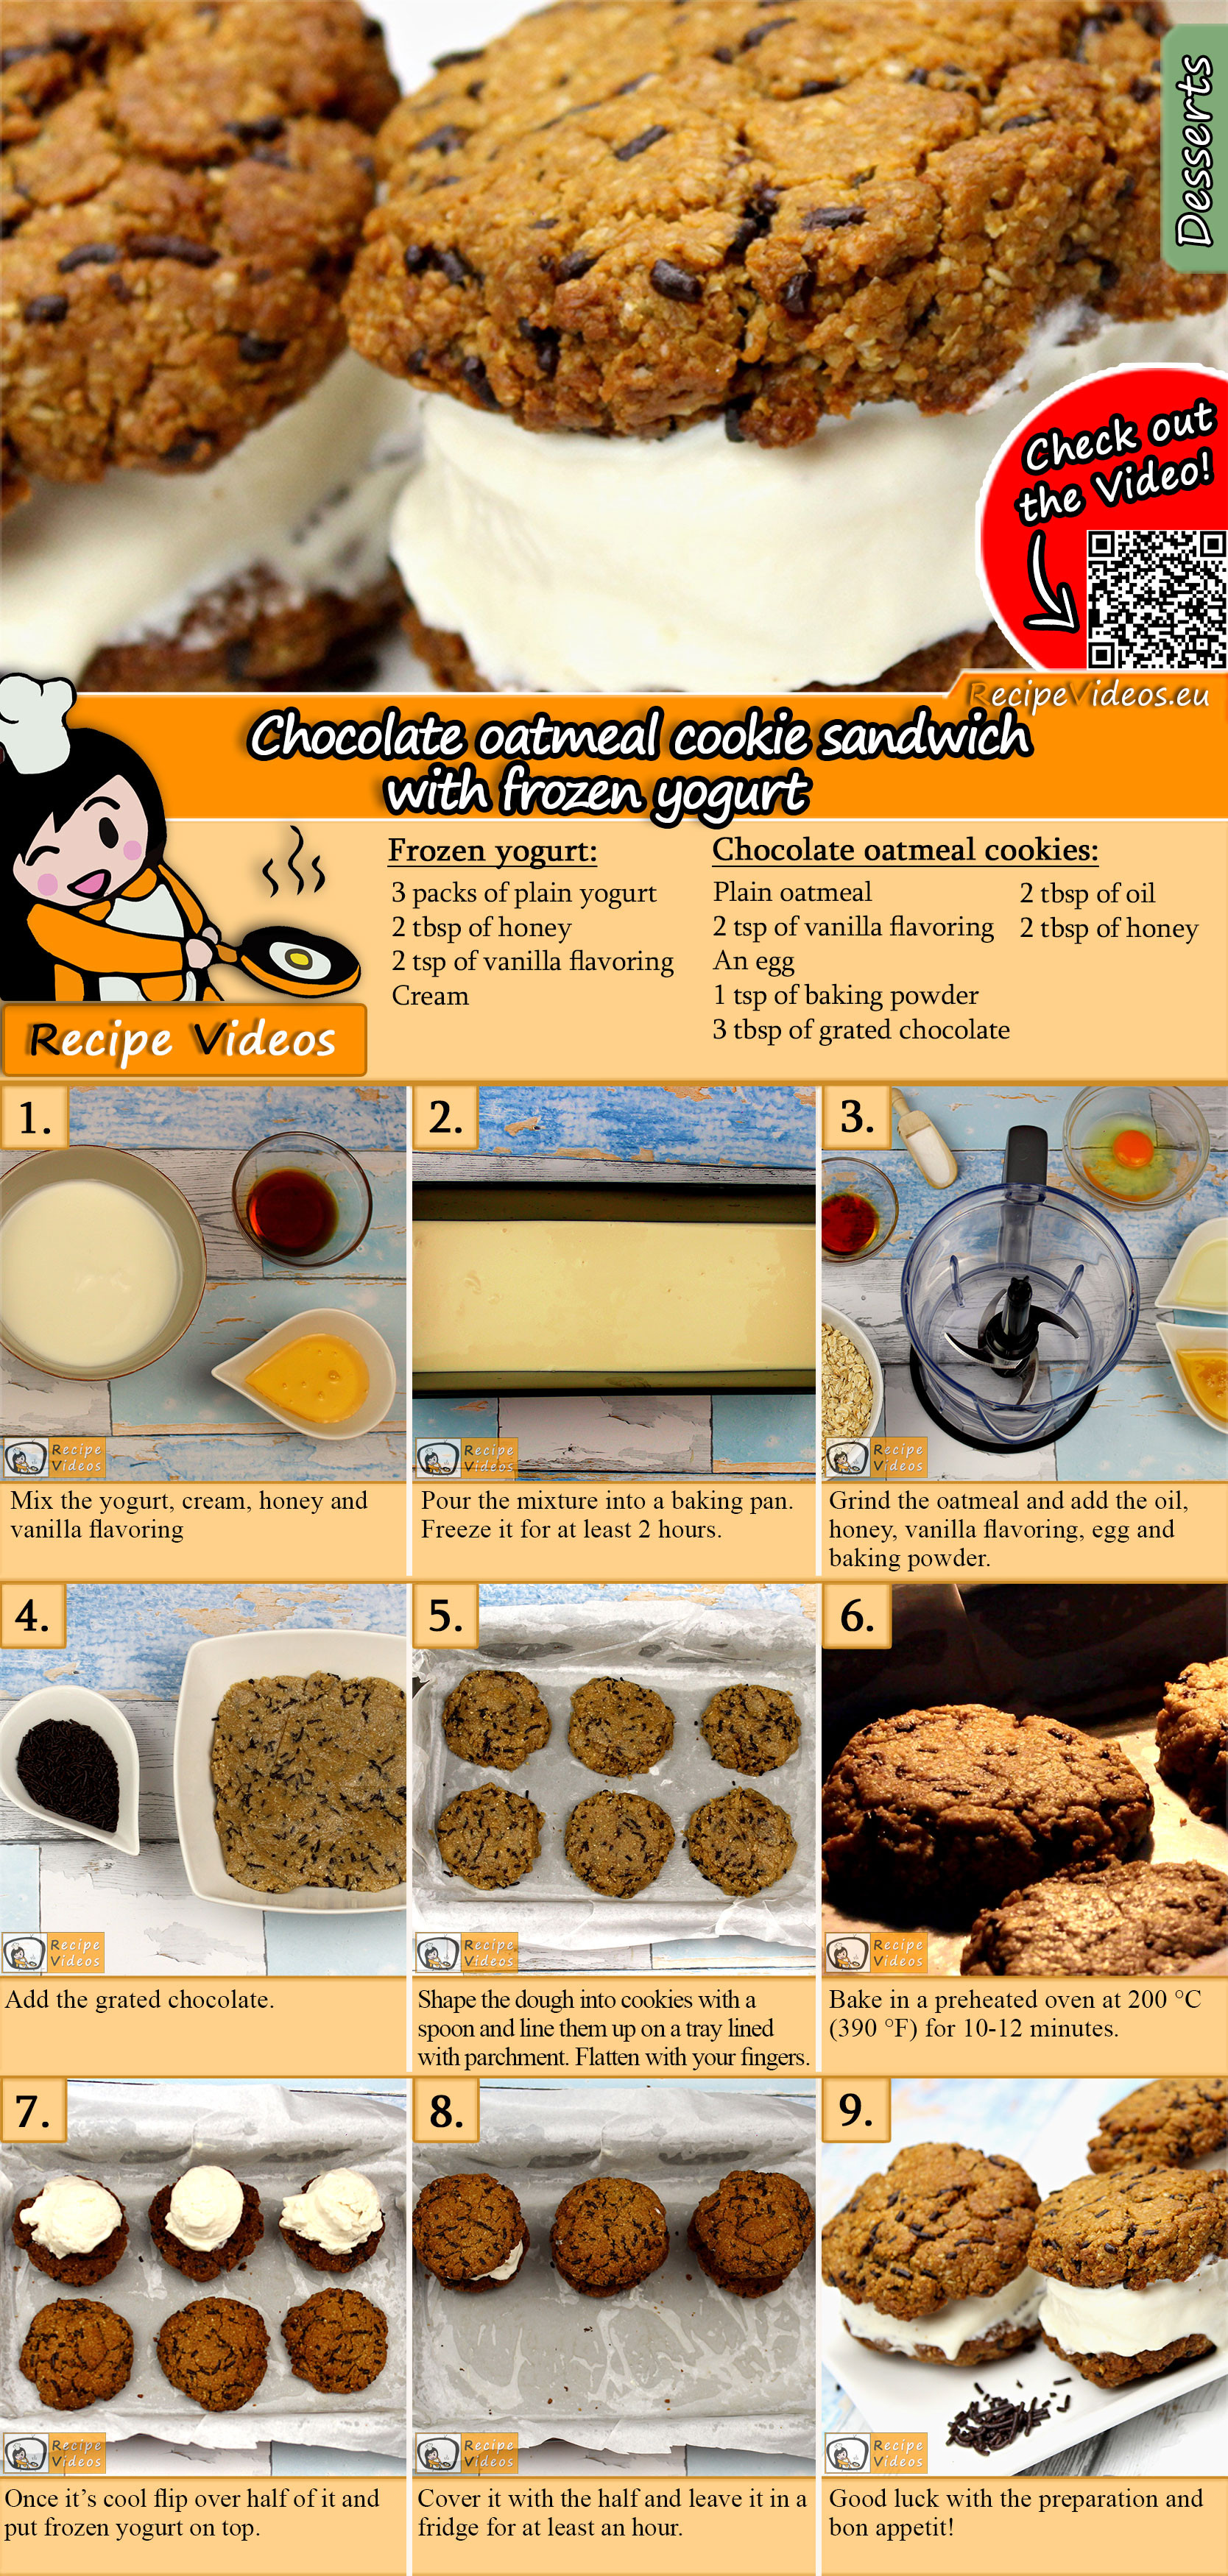 Chocolate oatmeal cookie sandwich with frozen yogurt recipe with video